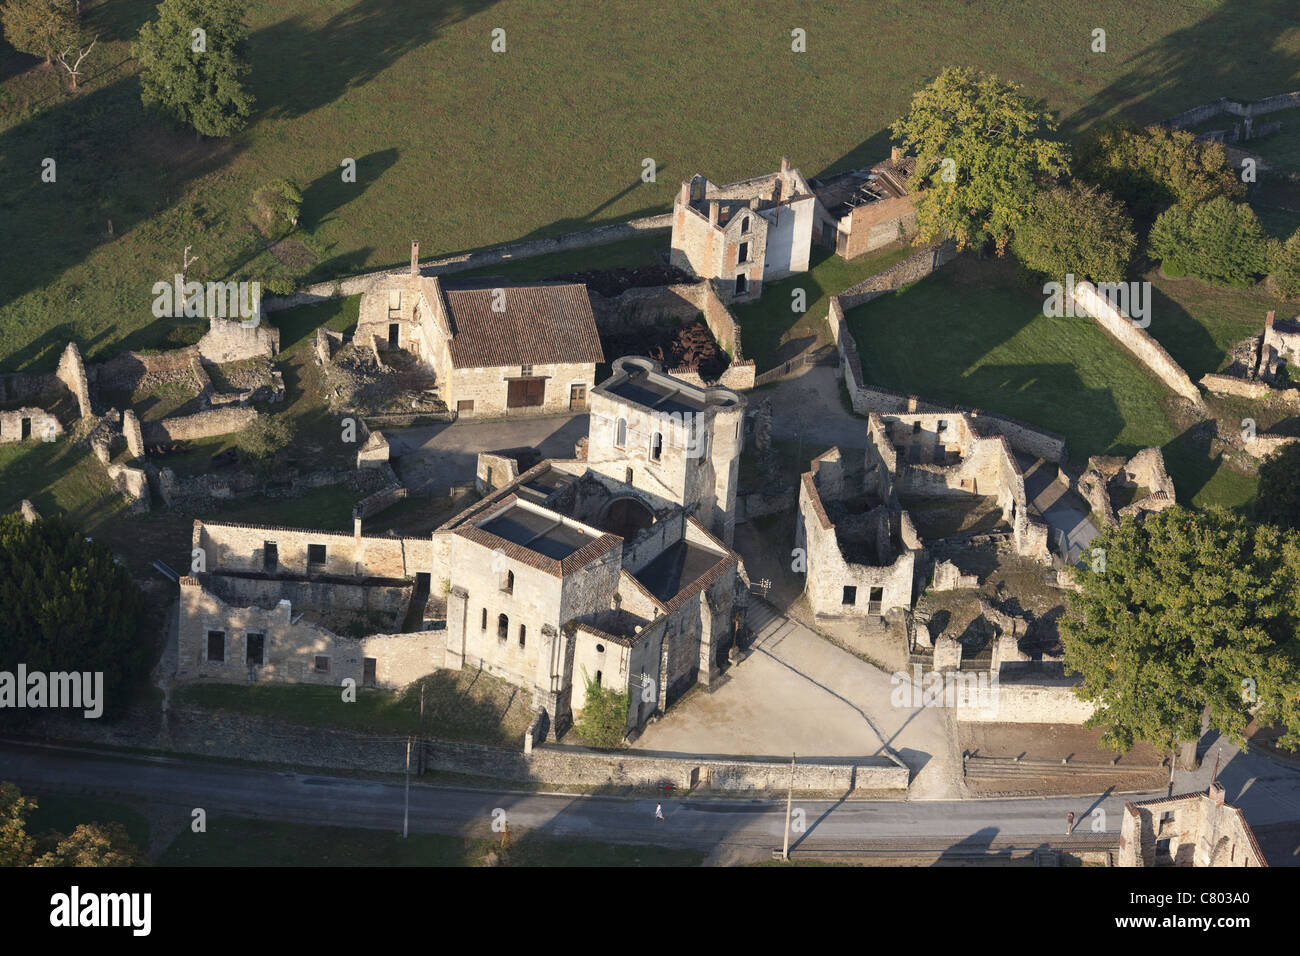 ORADOUR-SUR-GLANE (aerial view). Site of a WWII massacre; German soldiers killed all 642 inhabitants, including - Stock Image